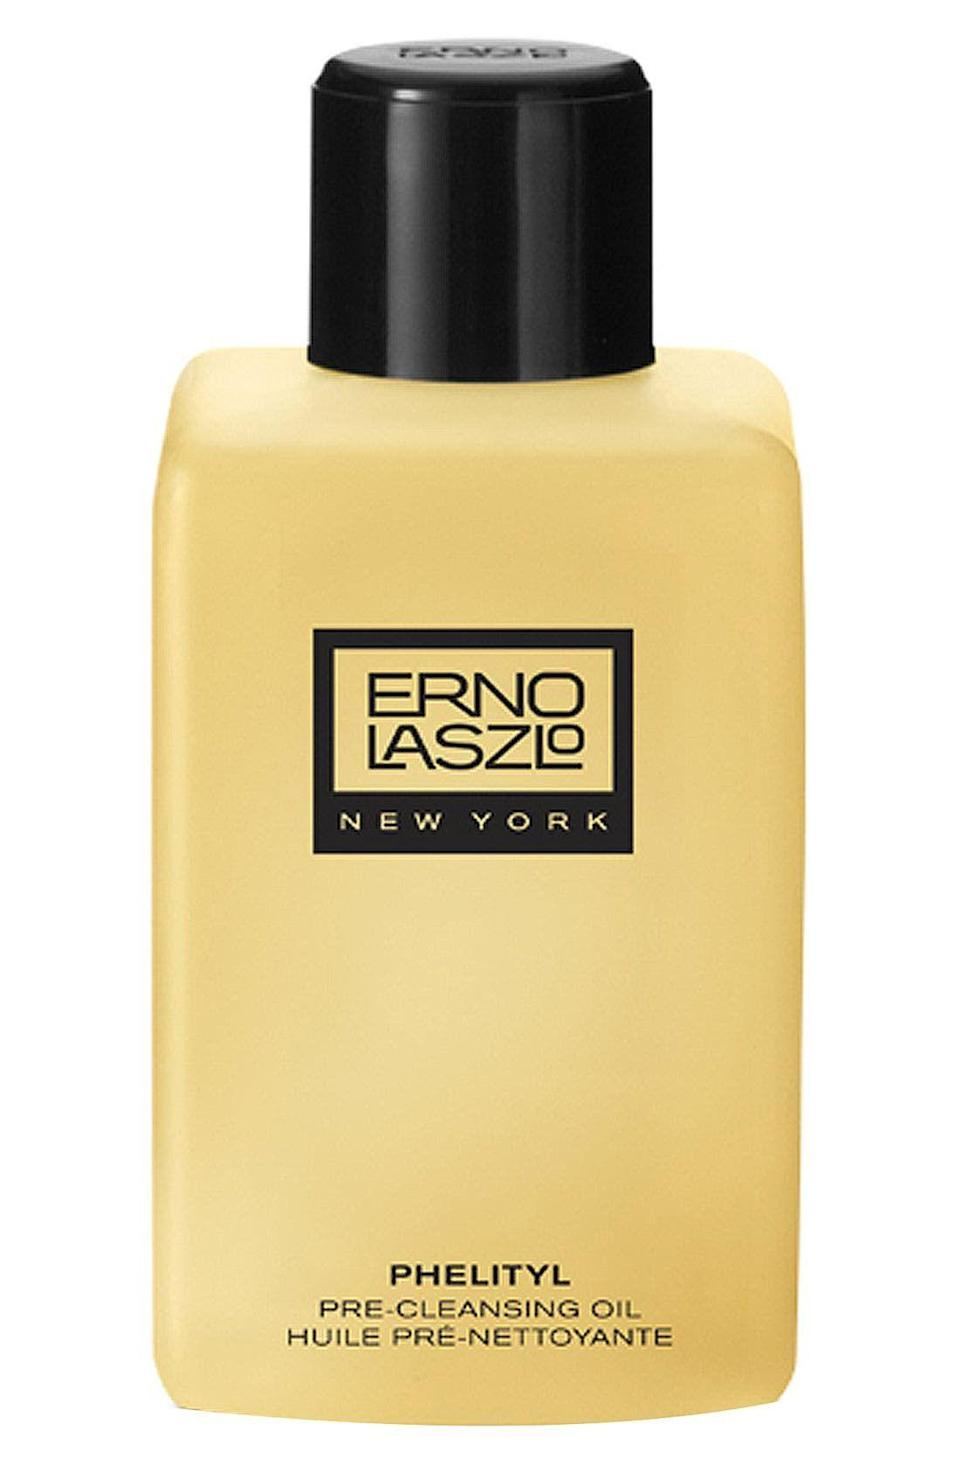 """<p><strong>Erno Laszlo </strong></p><p>nordstrom.com</p><p><strong>$64.00</strong></p><p><a href=""""https://go.redirectingat.com?id=74968X1596630&url=https%3A%2F%2Fwww.nordstrom.com%2Fs%2Ferno-laszlo-phelityl-pre-cleansing-oil%2F3337408&sref=https%3A%2F%2Fwww.redbookmag.com%2Flife%2Fg36459640%2F10-brands-jackie-kennedy-loved%2F"""" rel=""""nofollow noopener"""" target=""""_blank"""" data-ylk=""""slk:Shop Now"""" class=""""link rapid-noclick-resp"""">Shop Now</a></p>"""